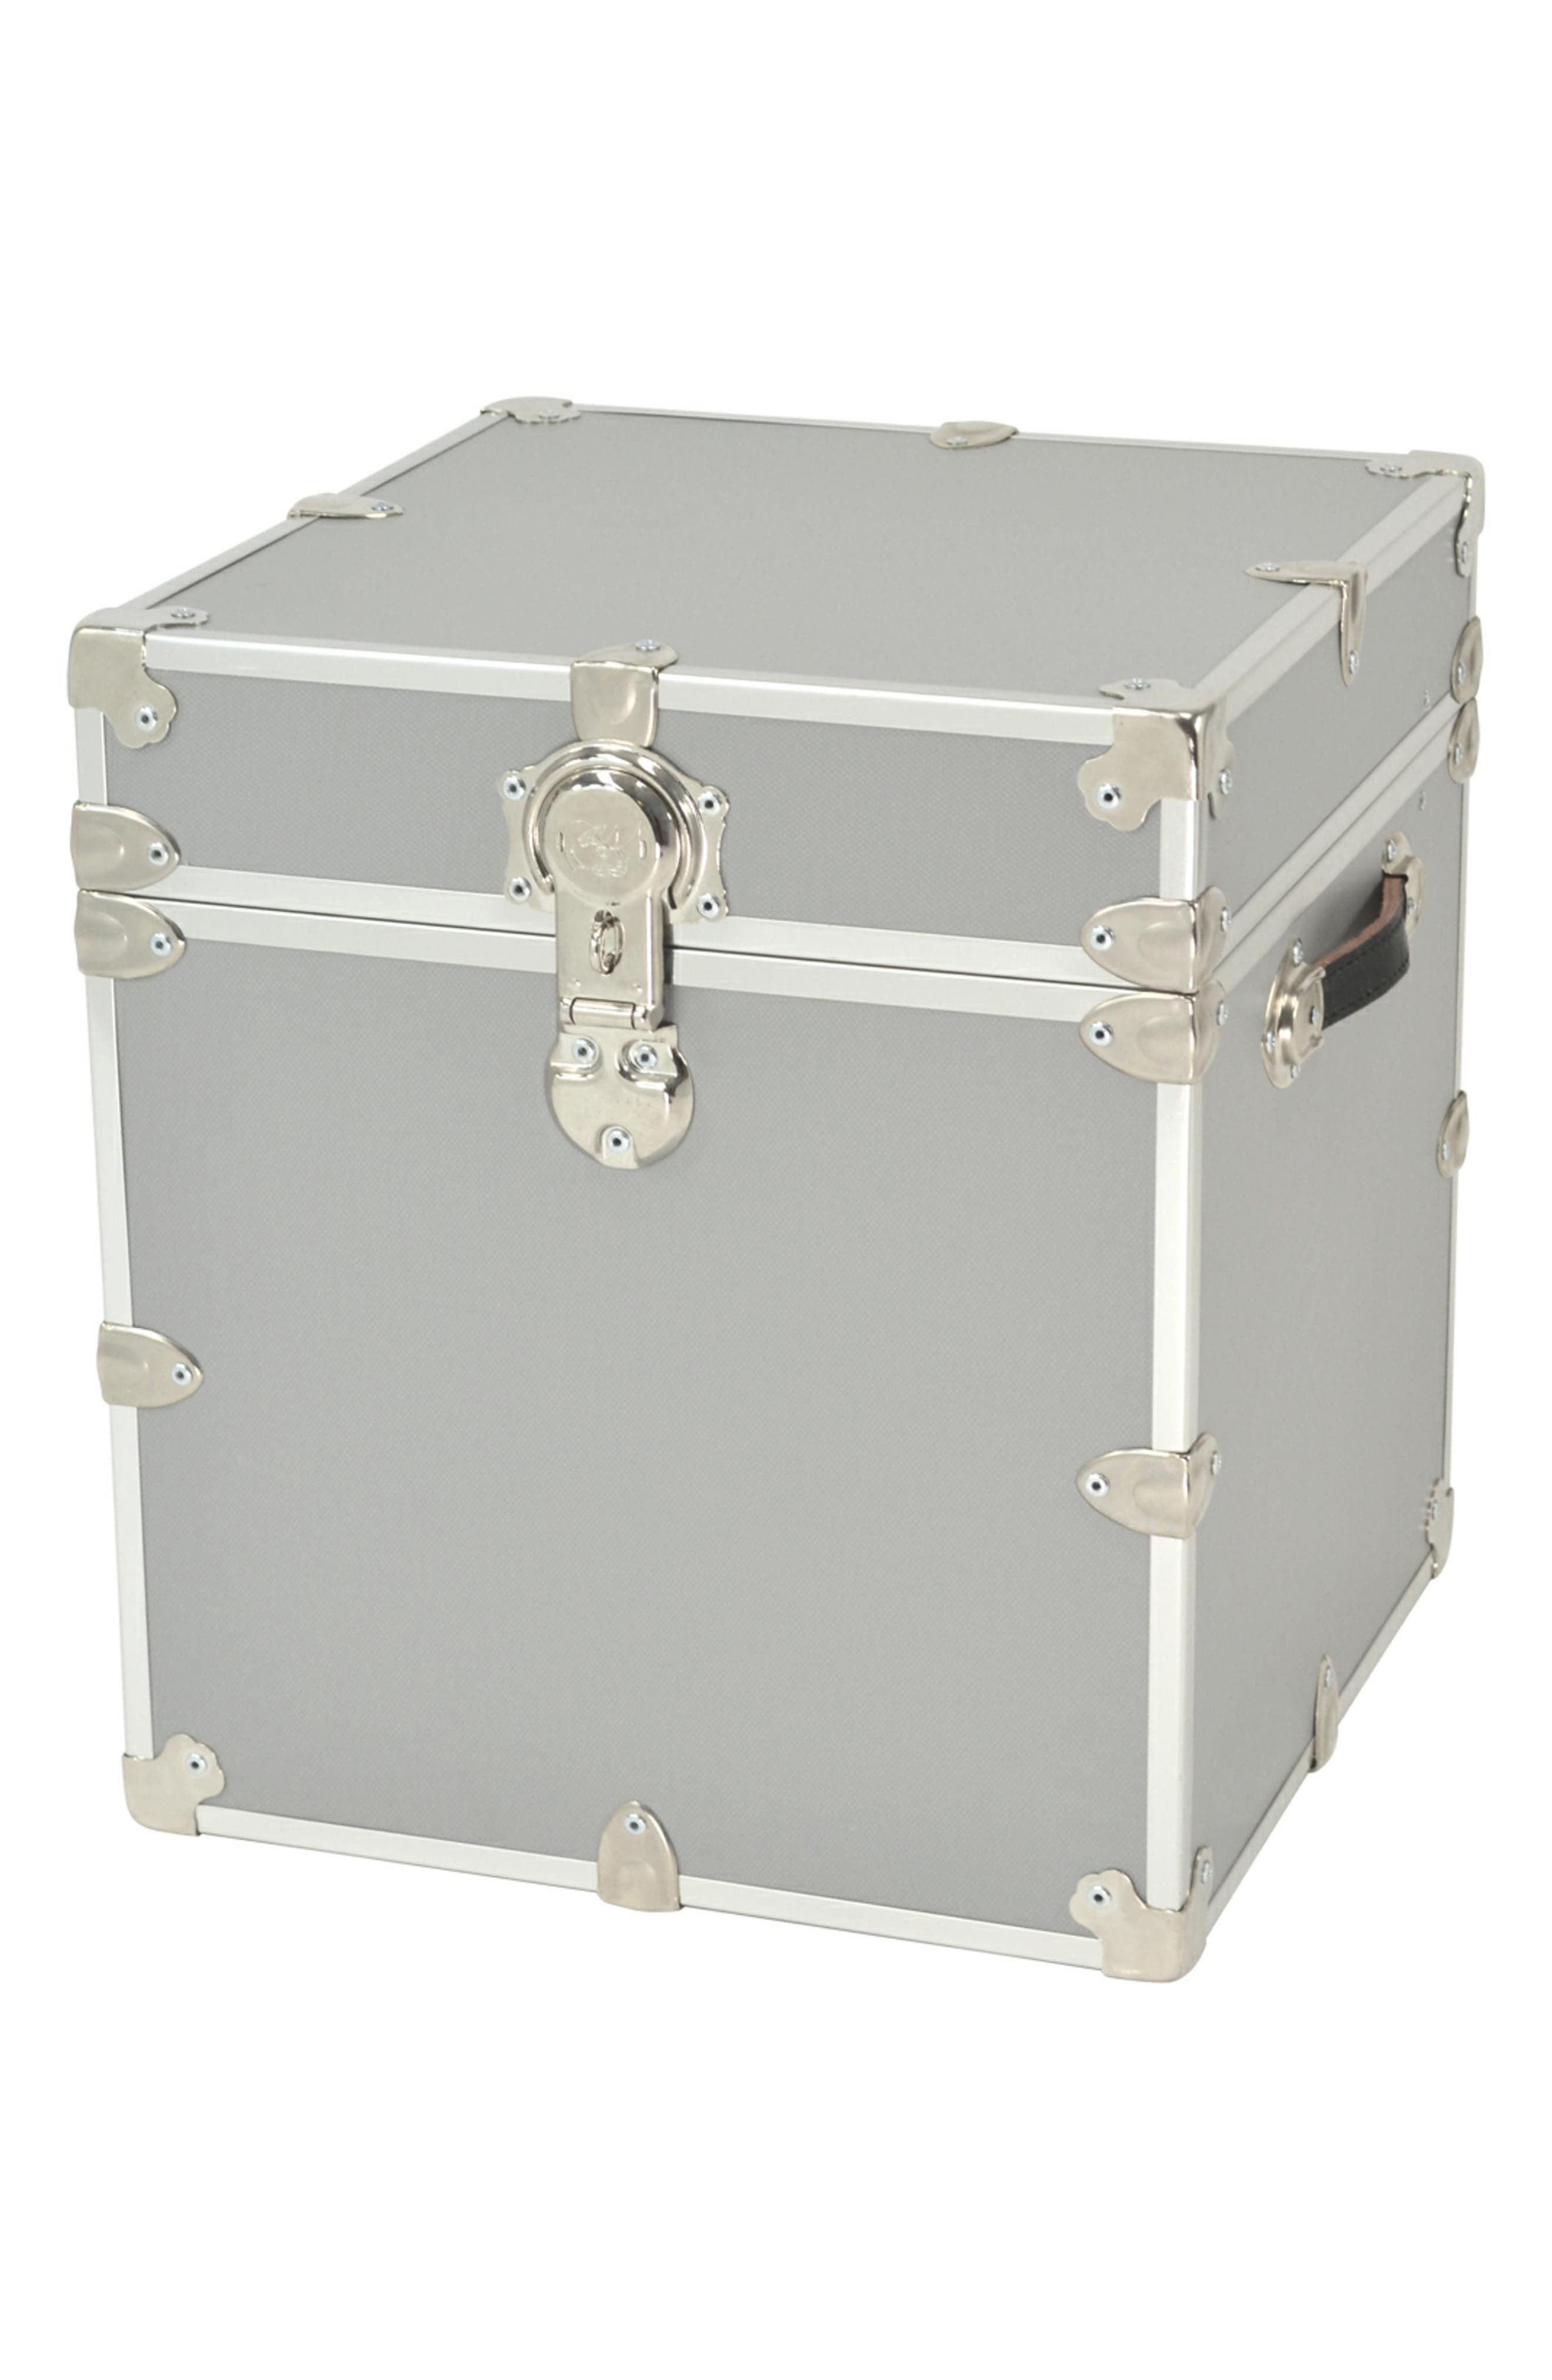 Rhino Trunk  Case Armor Cube Trunk Size One Size  Metallic